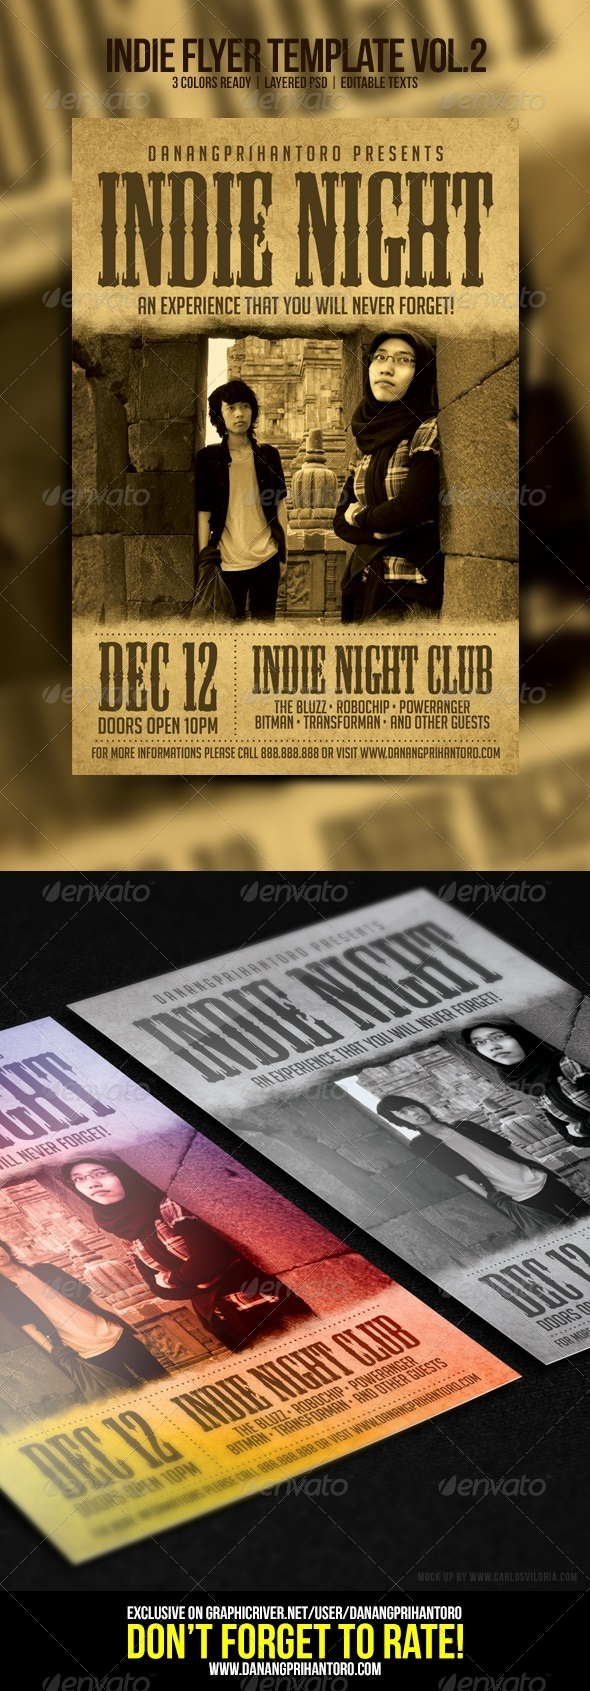 GraphicRiver Indie Flyer Template Vol 2 6614513